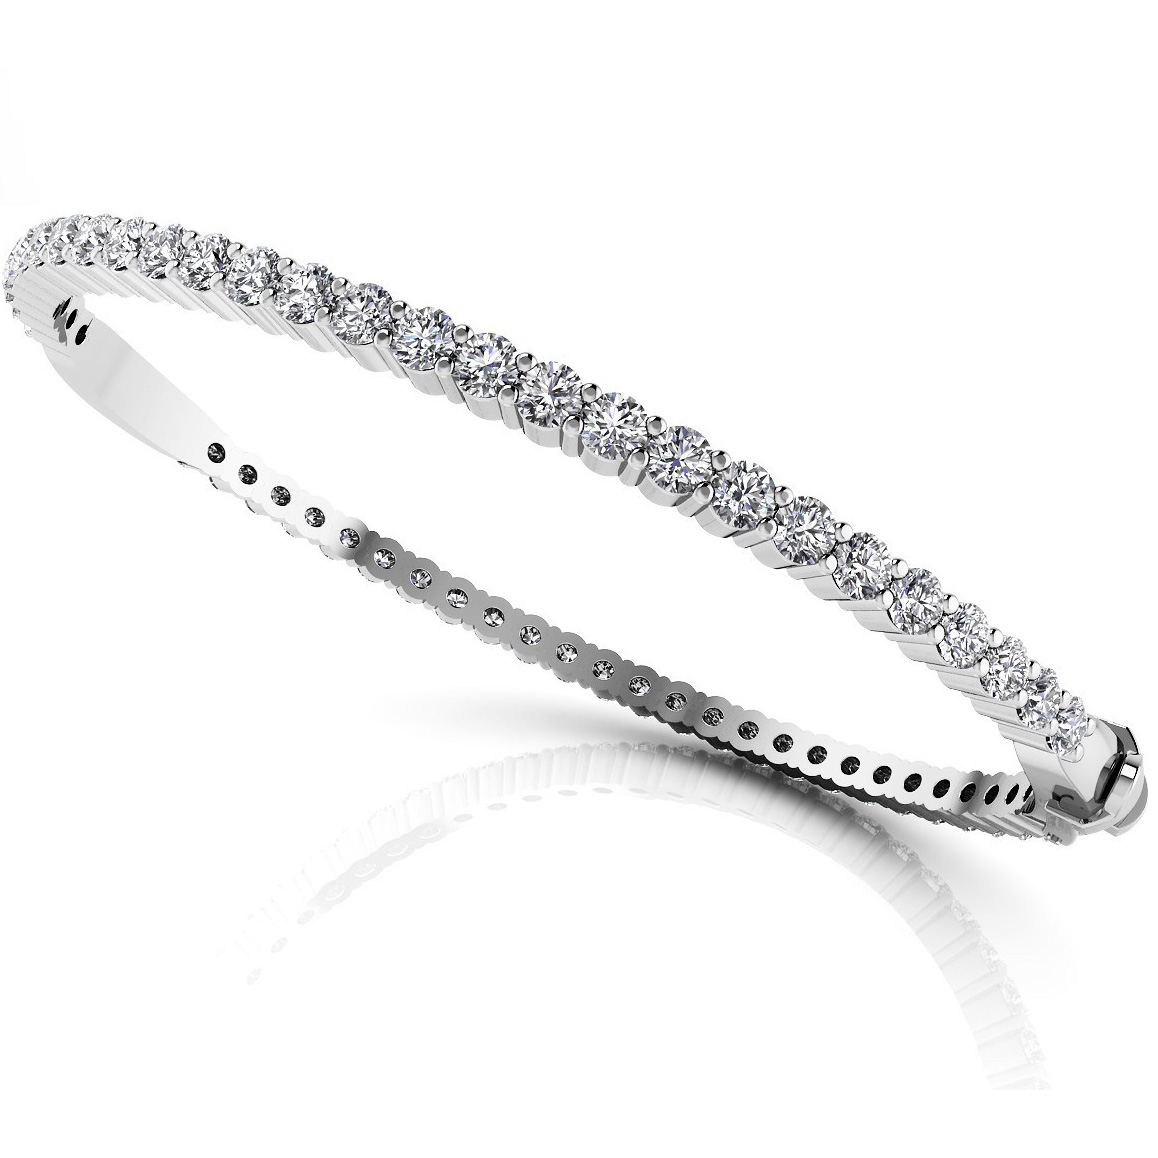 Bracelet Esclave en Or blanc 18 Kt 3.25 ct de Diamants